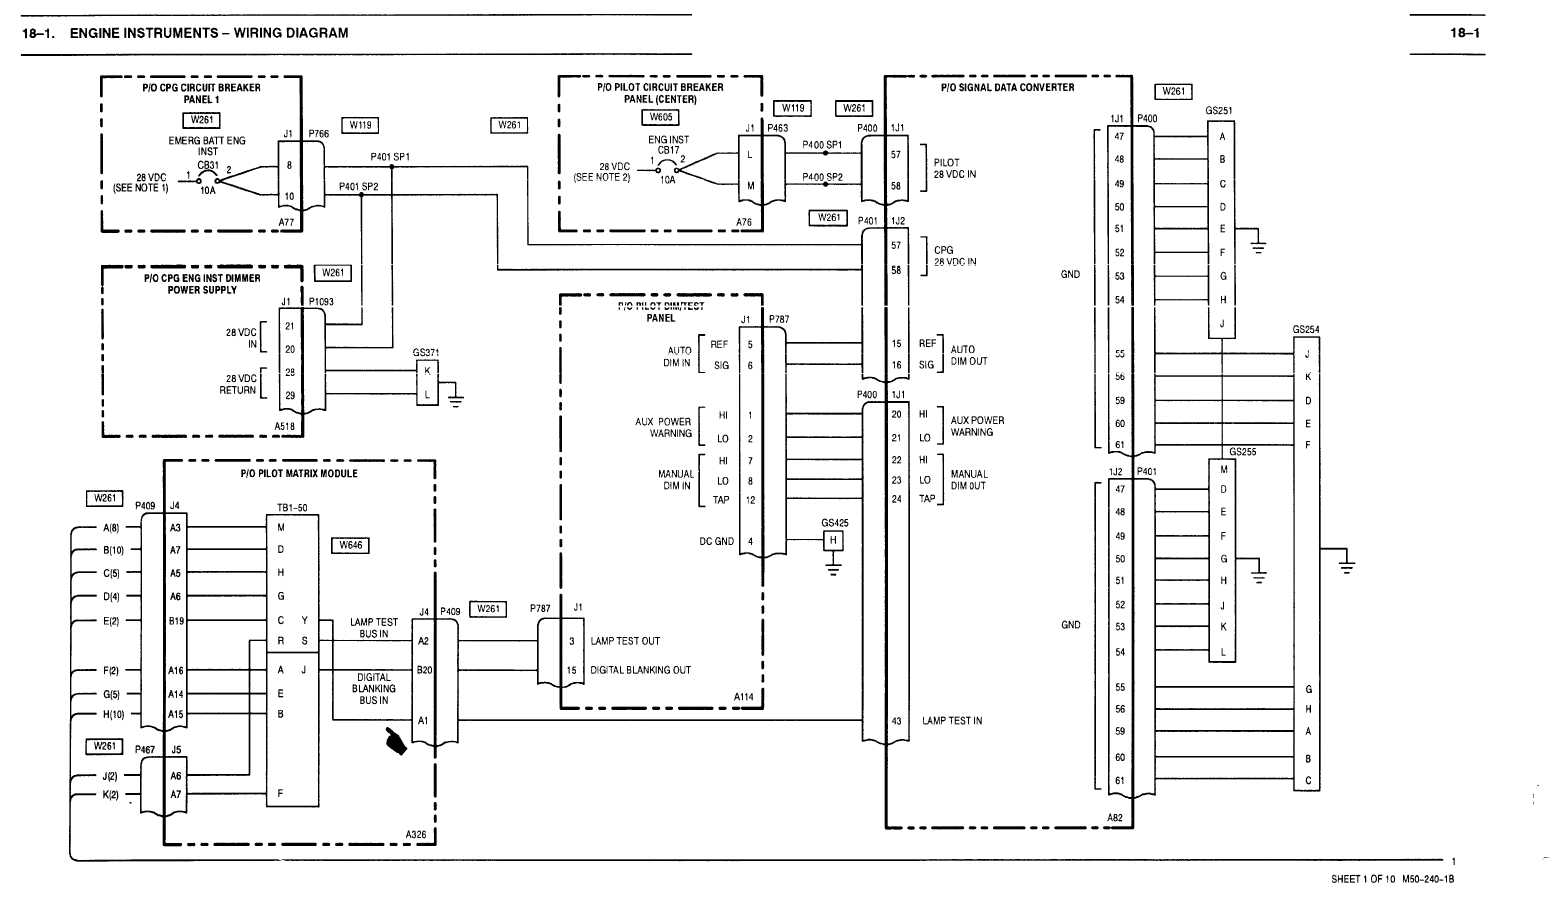 18 1 Engine Instruments Wiring Diagram